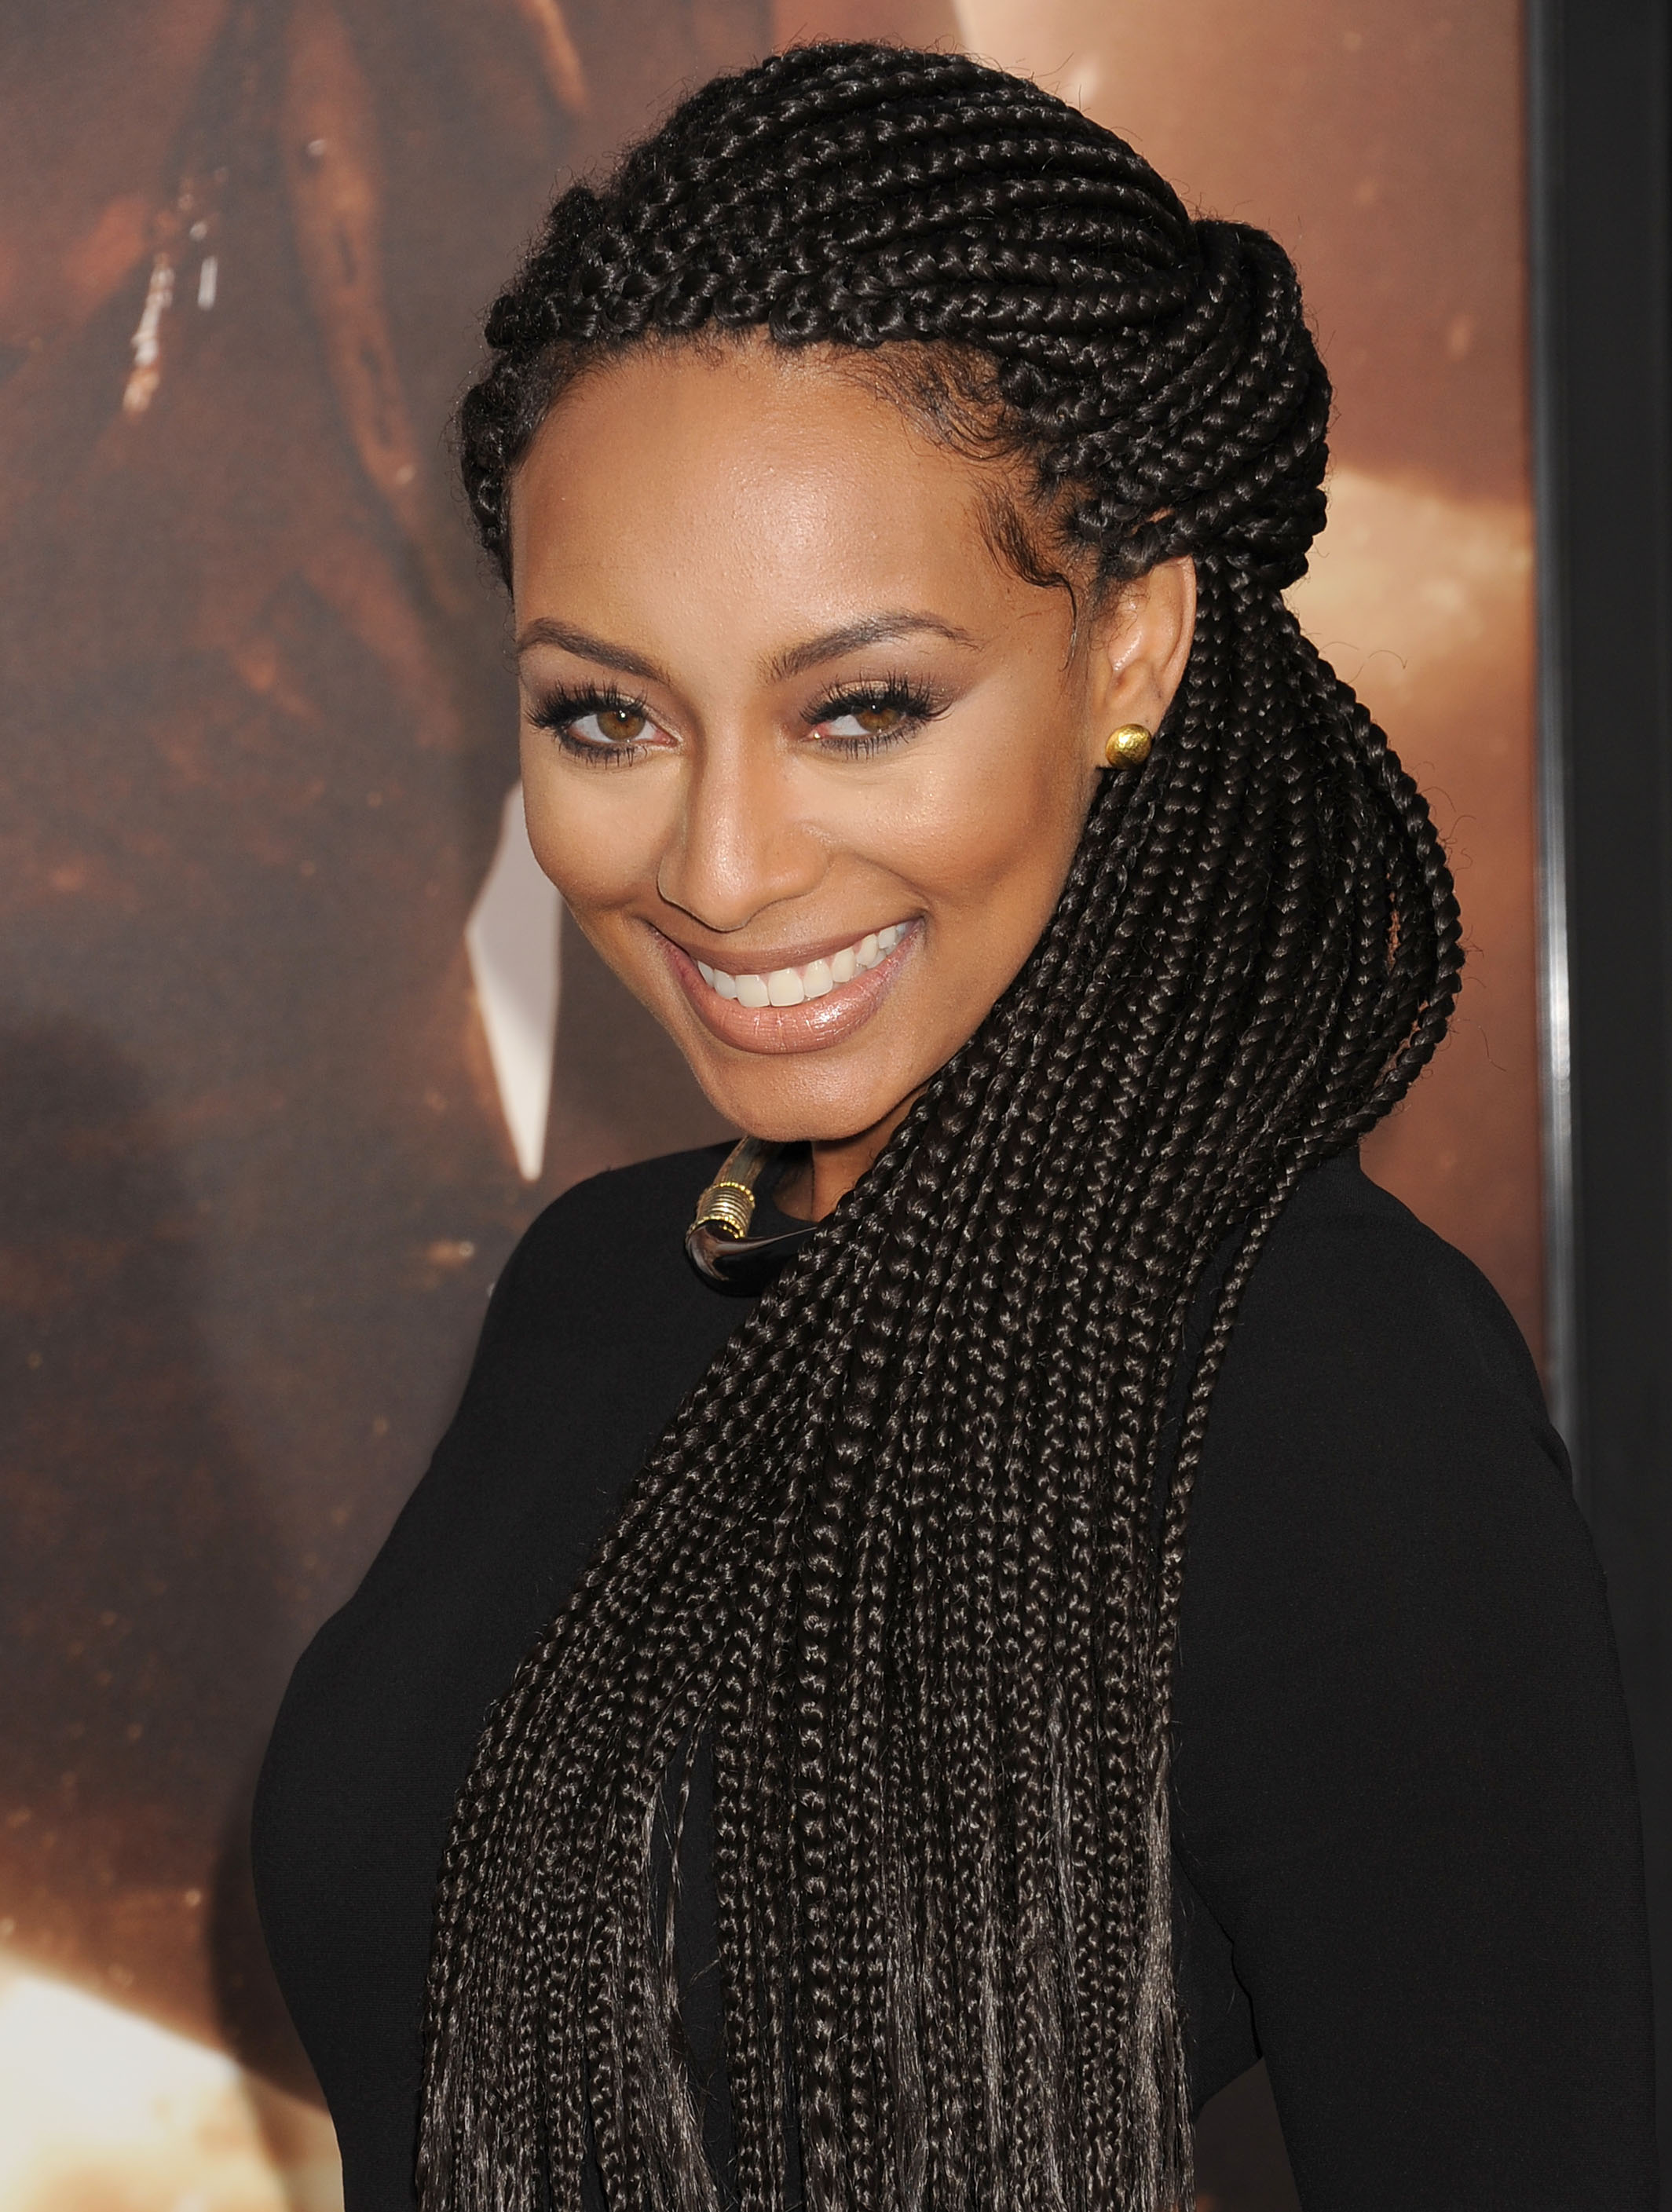 25+ Easy Natural Hairstyles for Black Women - Ideas for Short ...